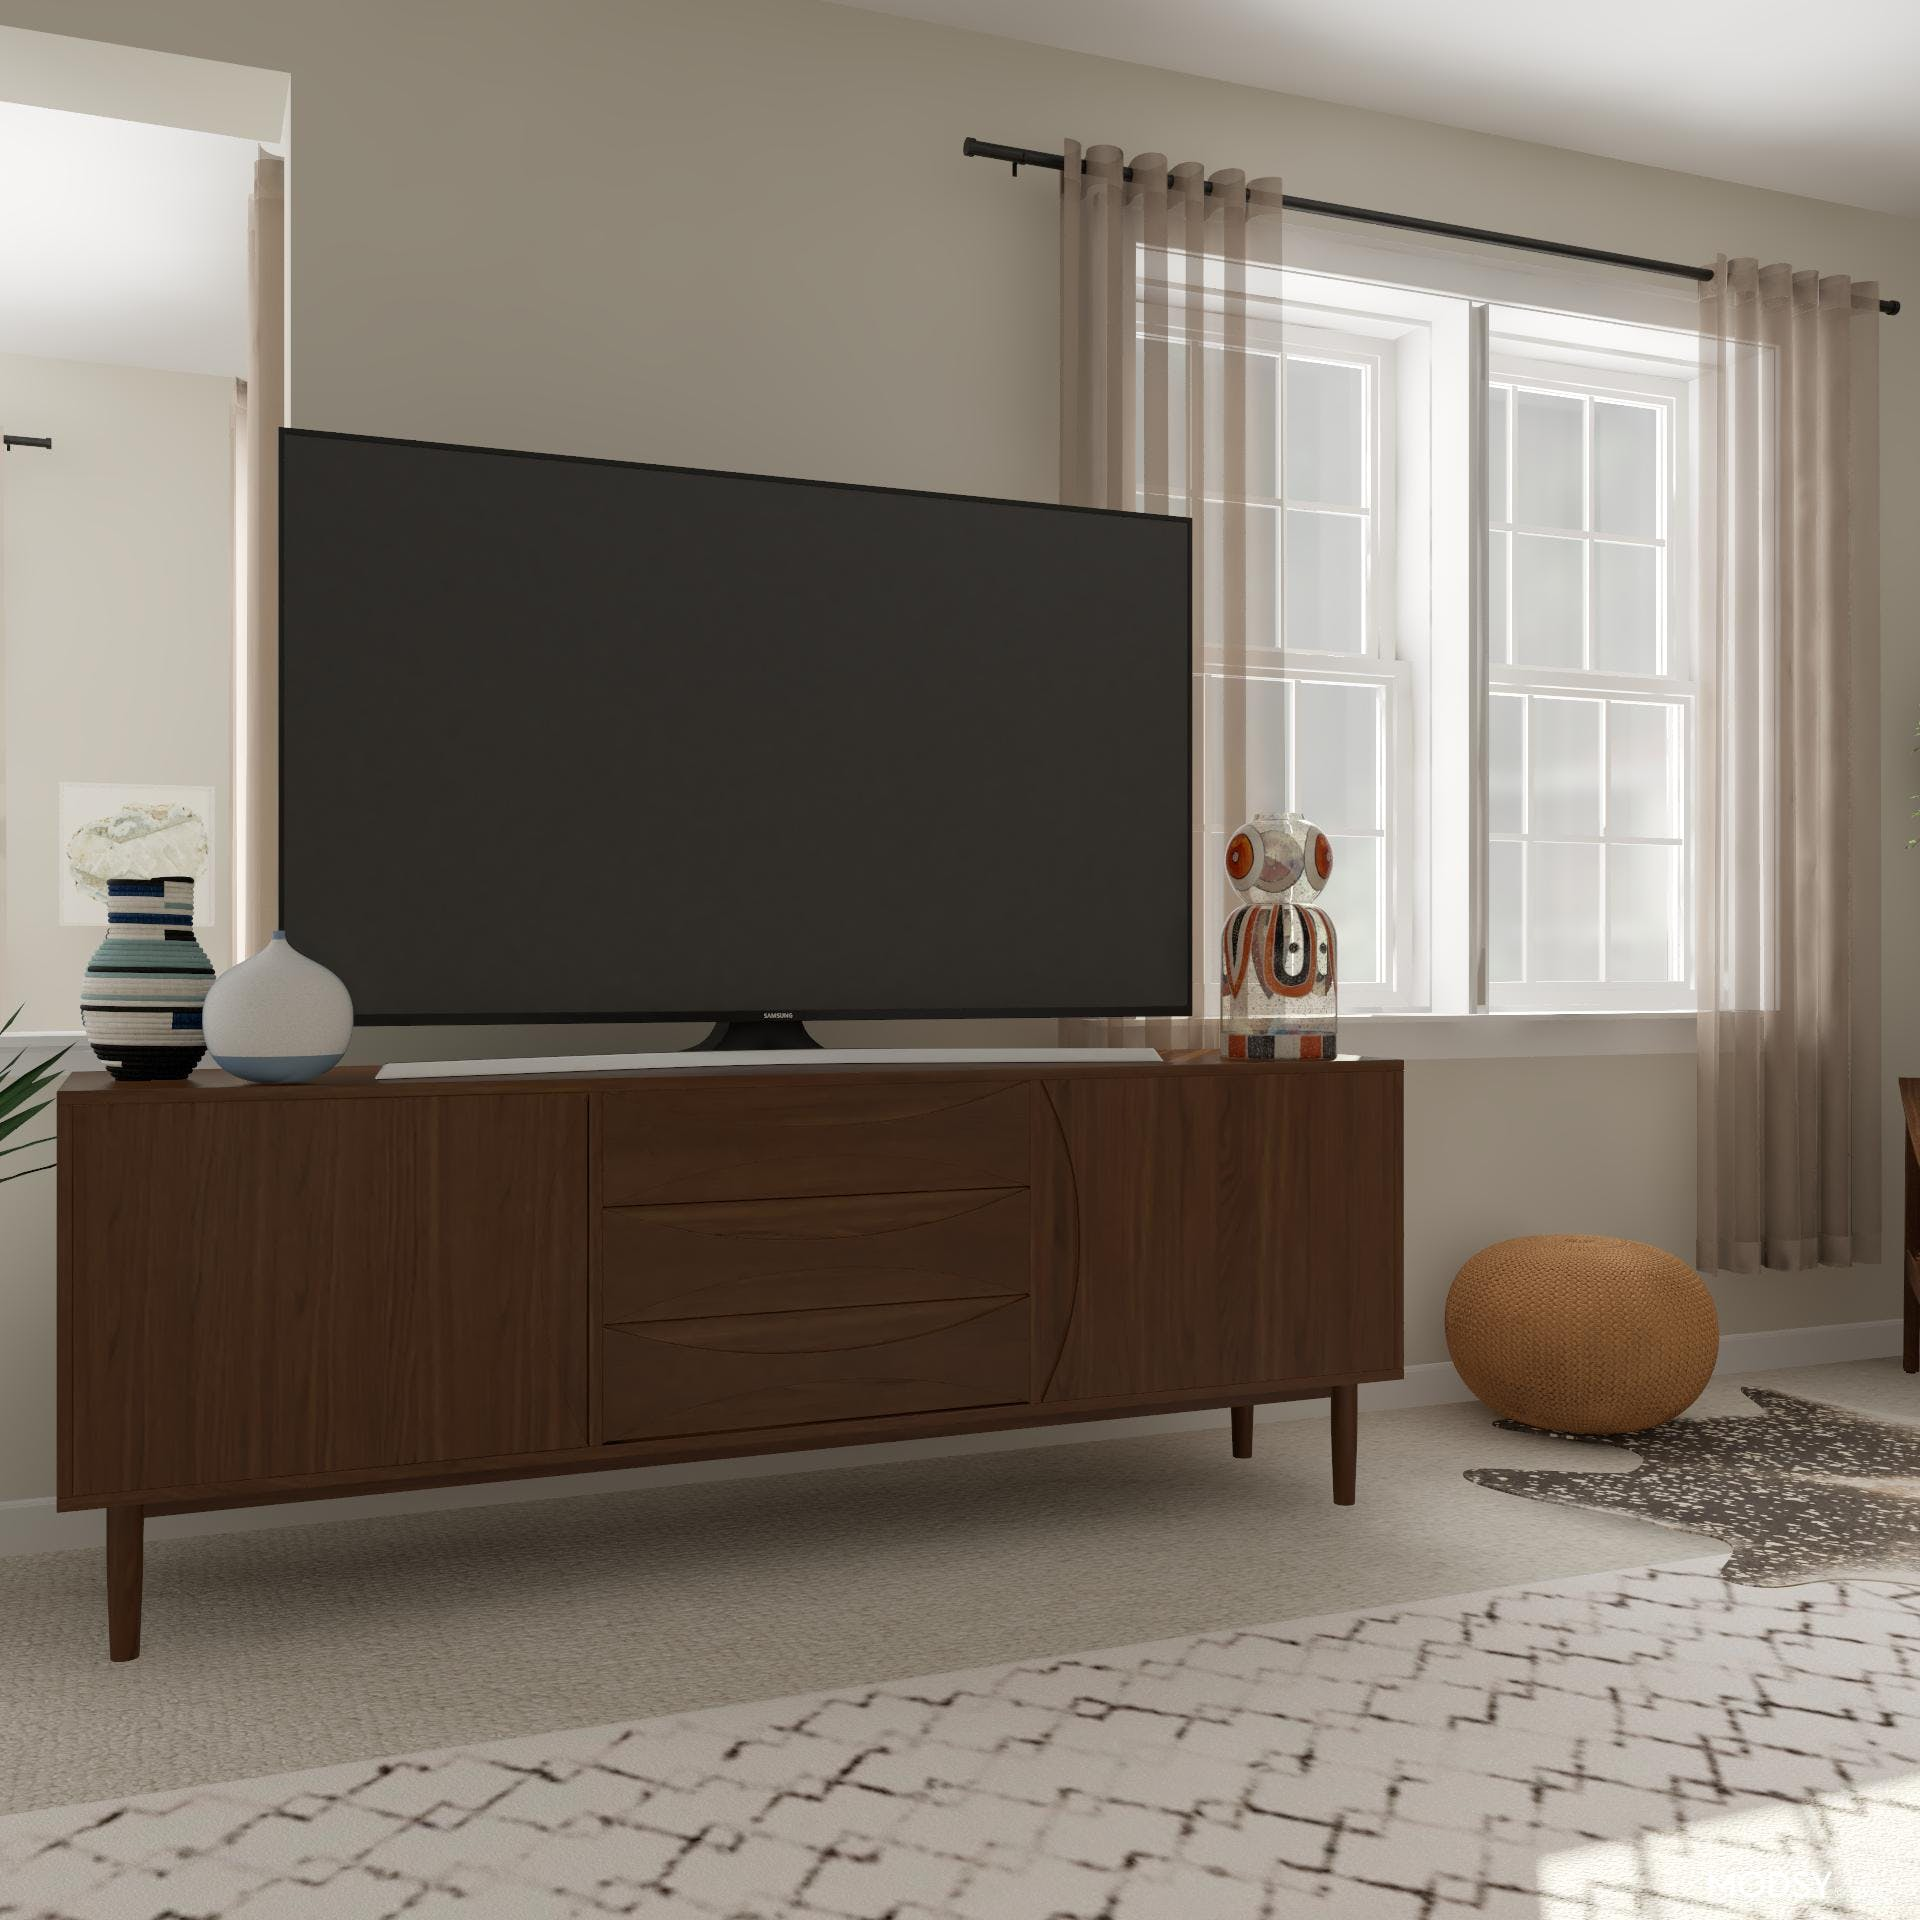 Media Console Proportions in Style